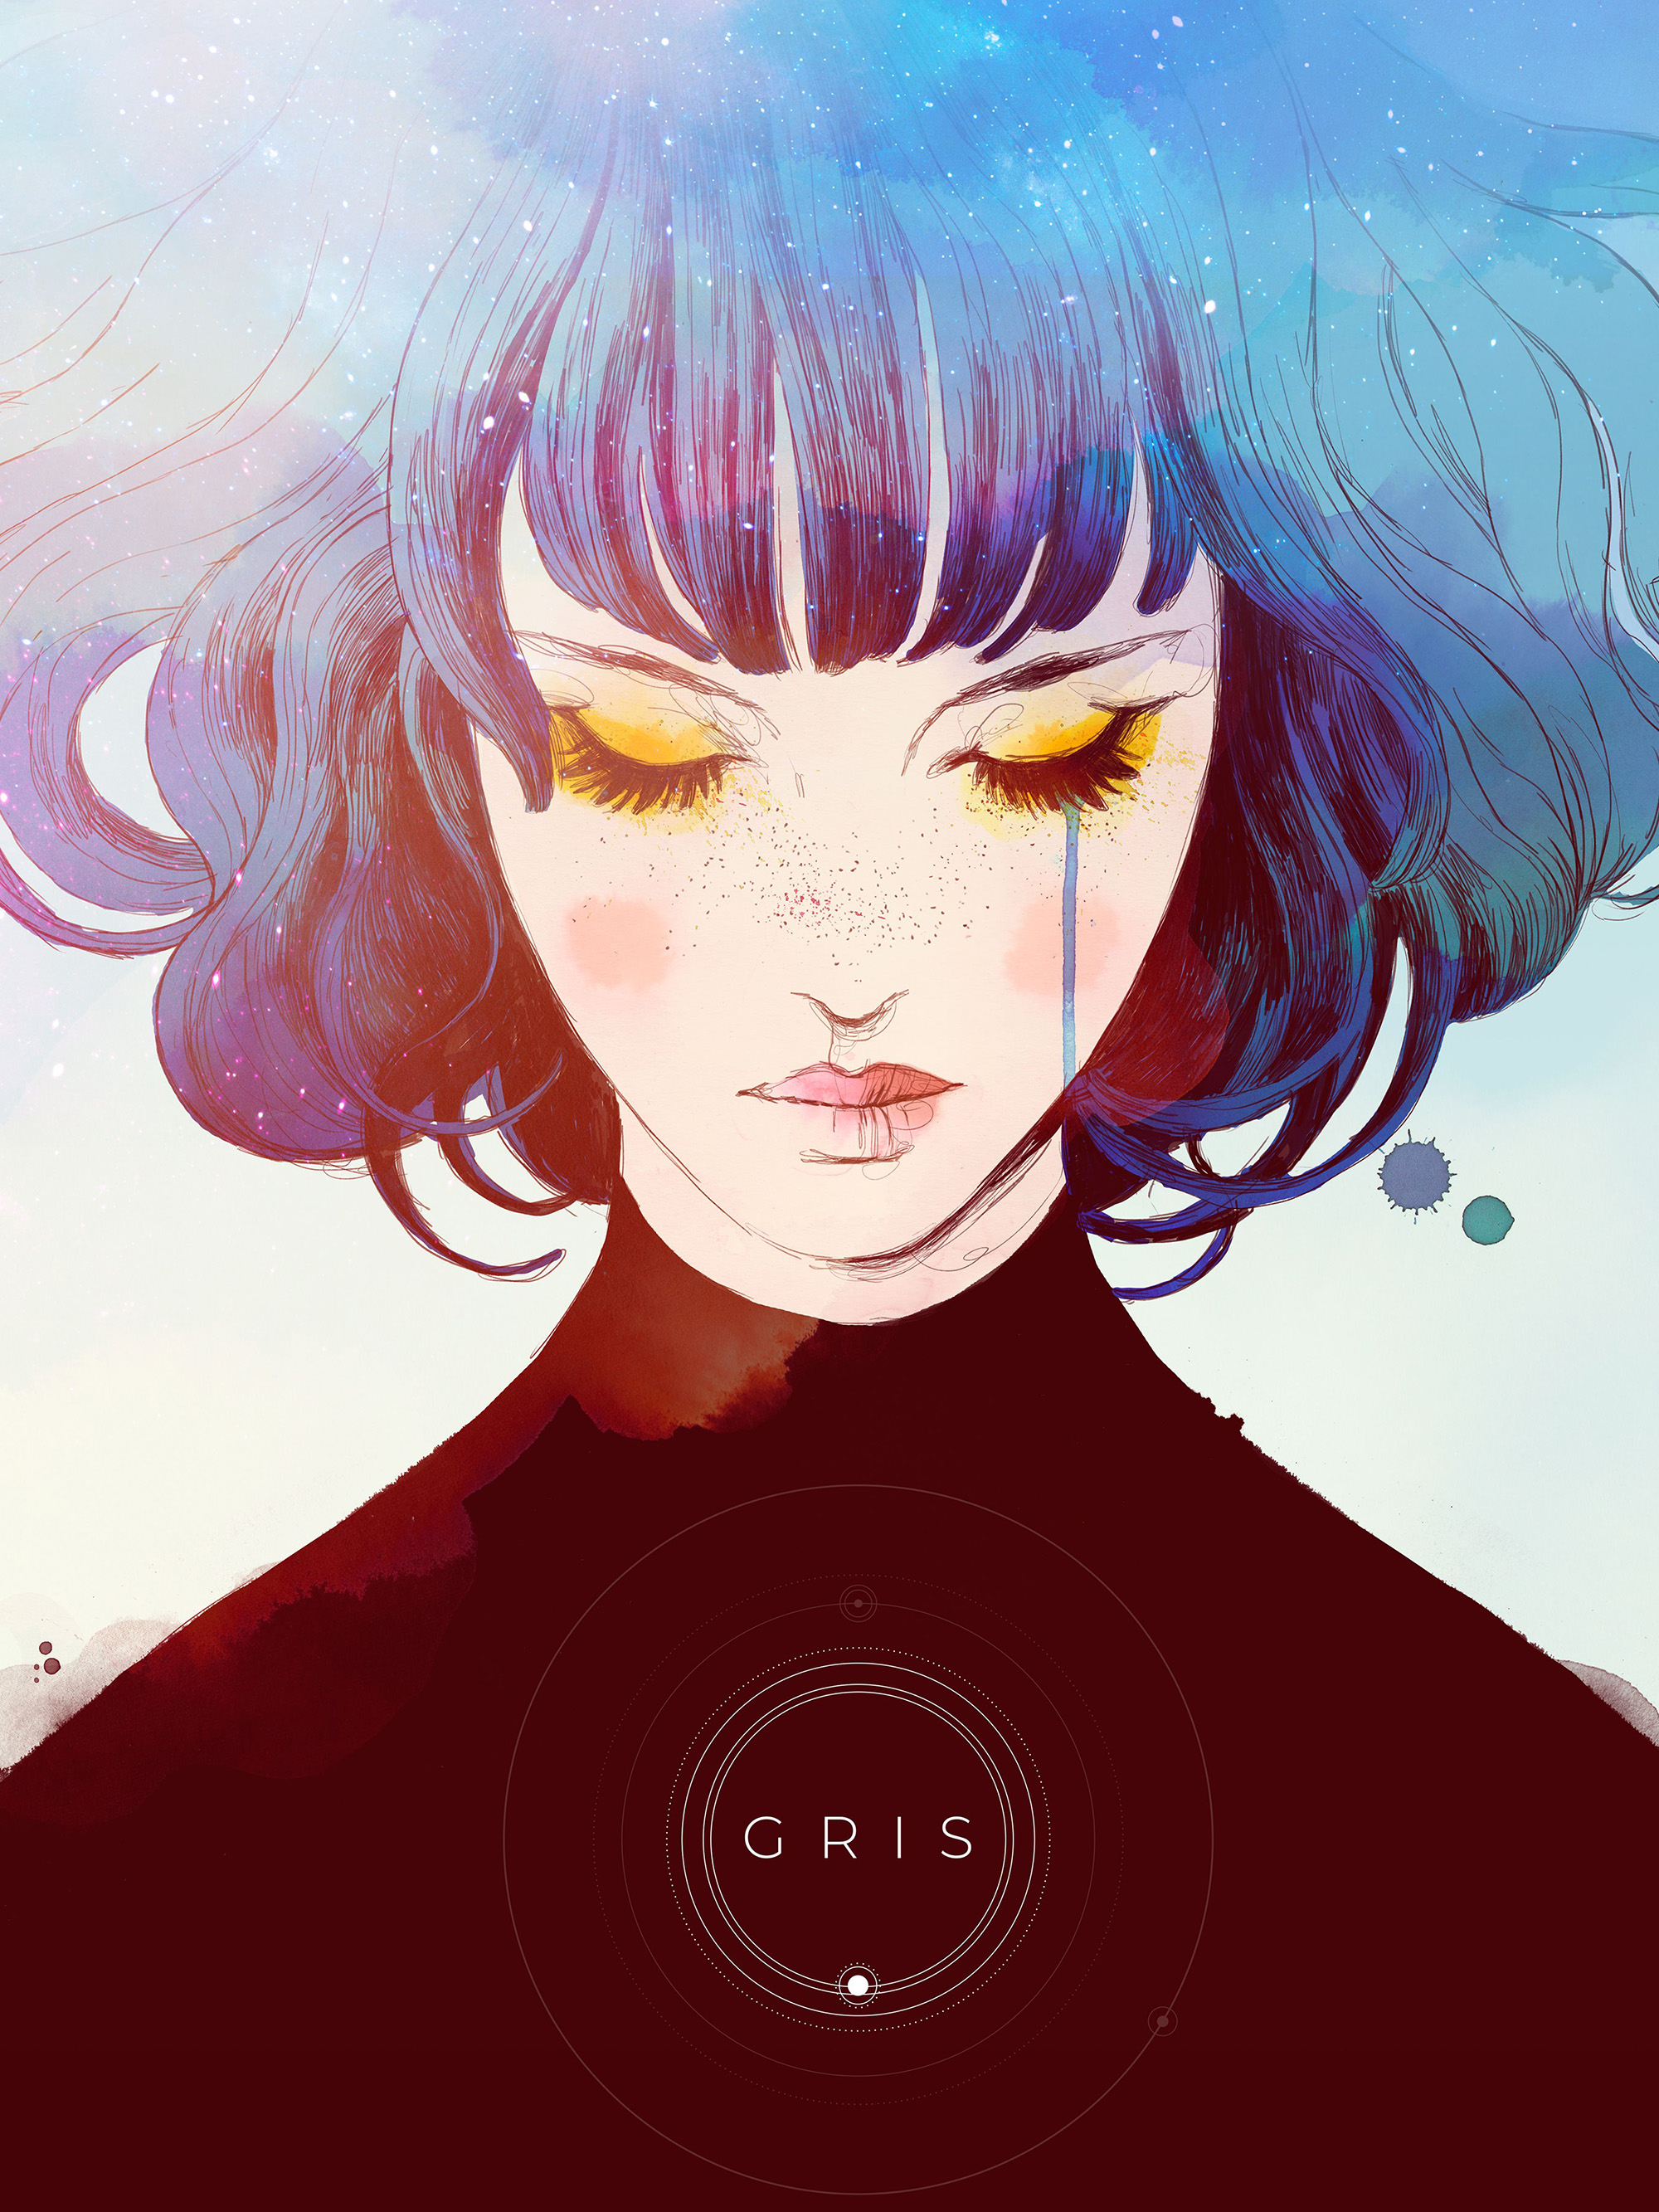 GRIS Key Visual